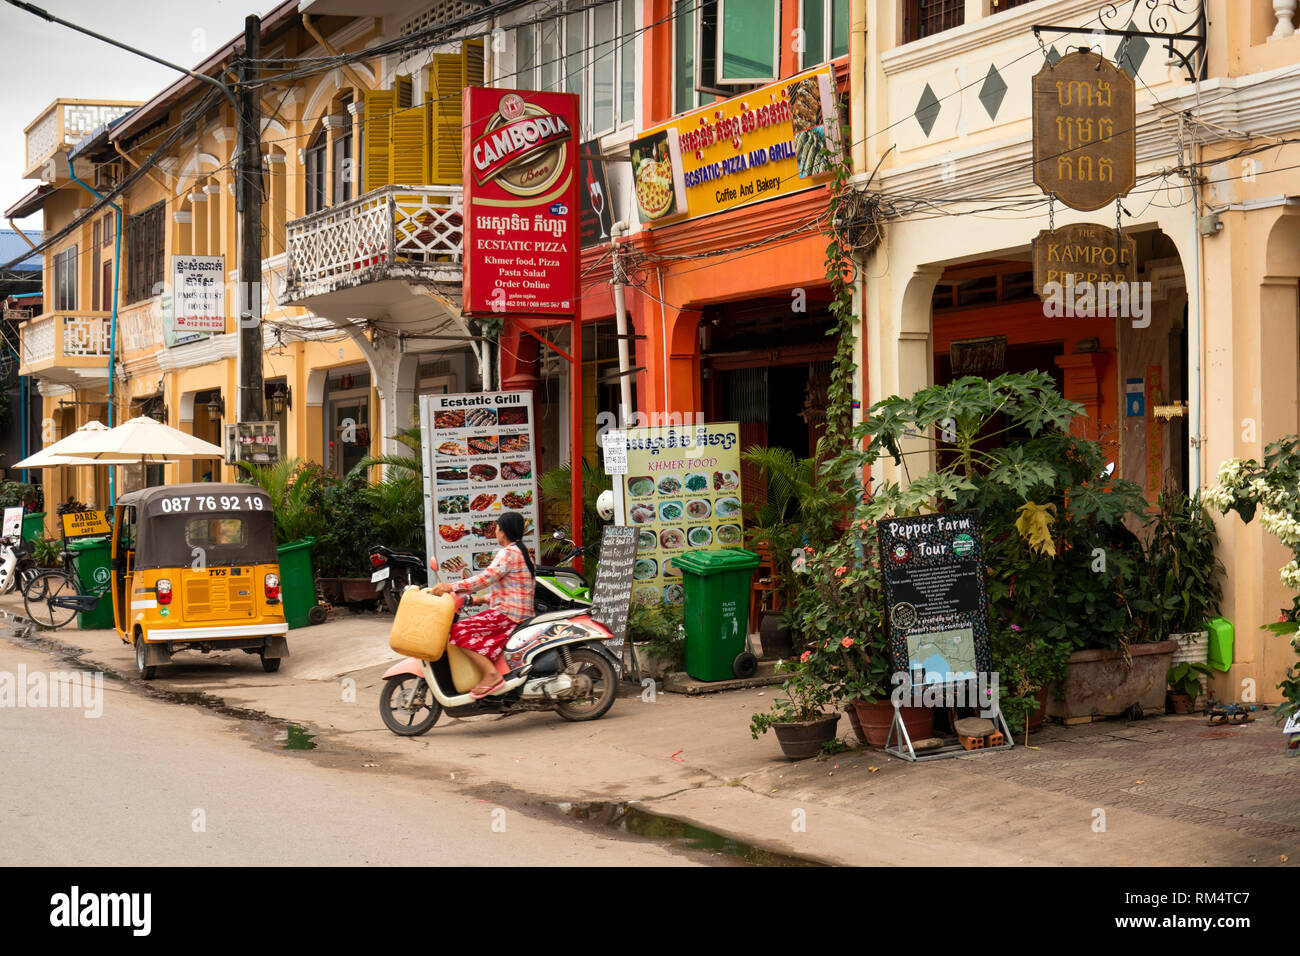 Cambodia, Kampot Province, Kampot city, Old Market area, Street 724, Kampot Pepper shop and restaurants Stock Photo